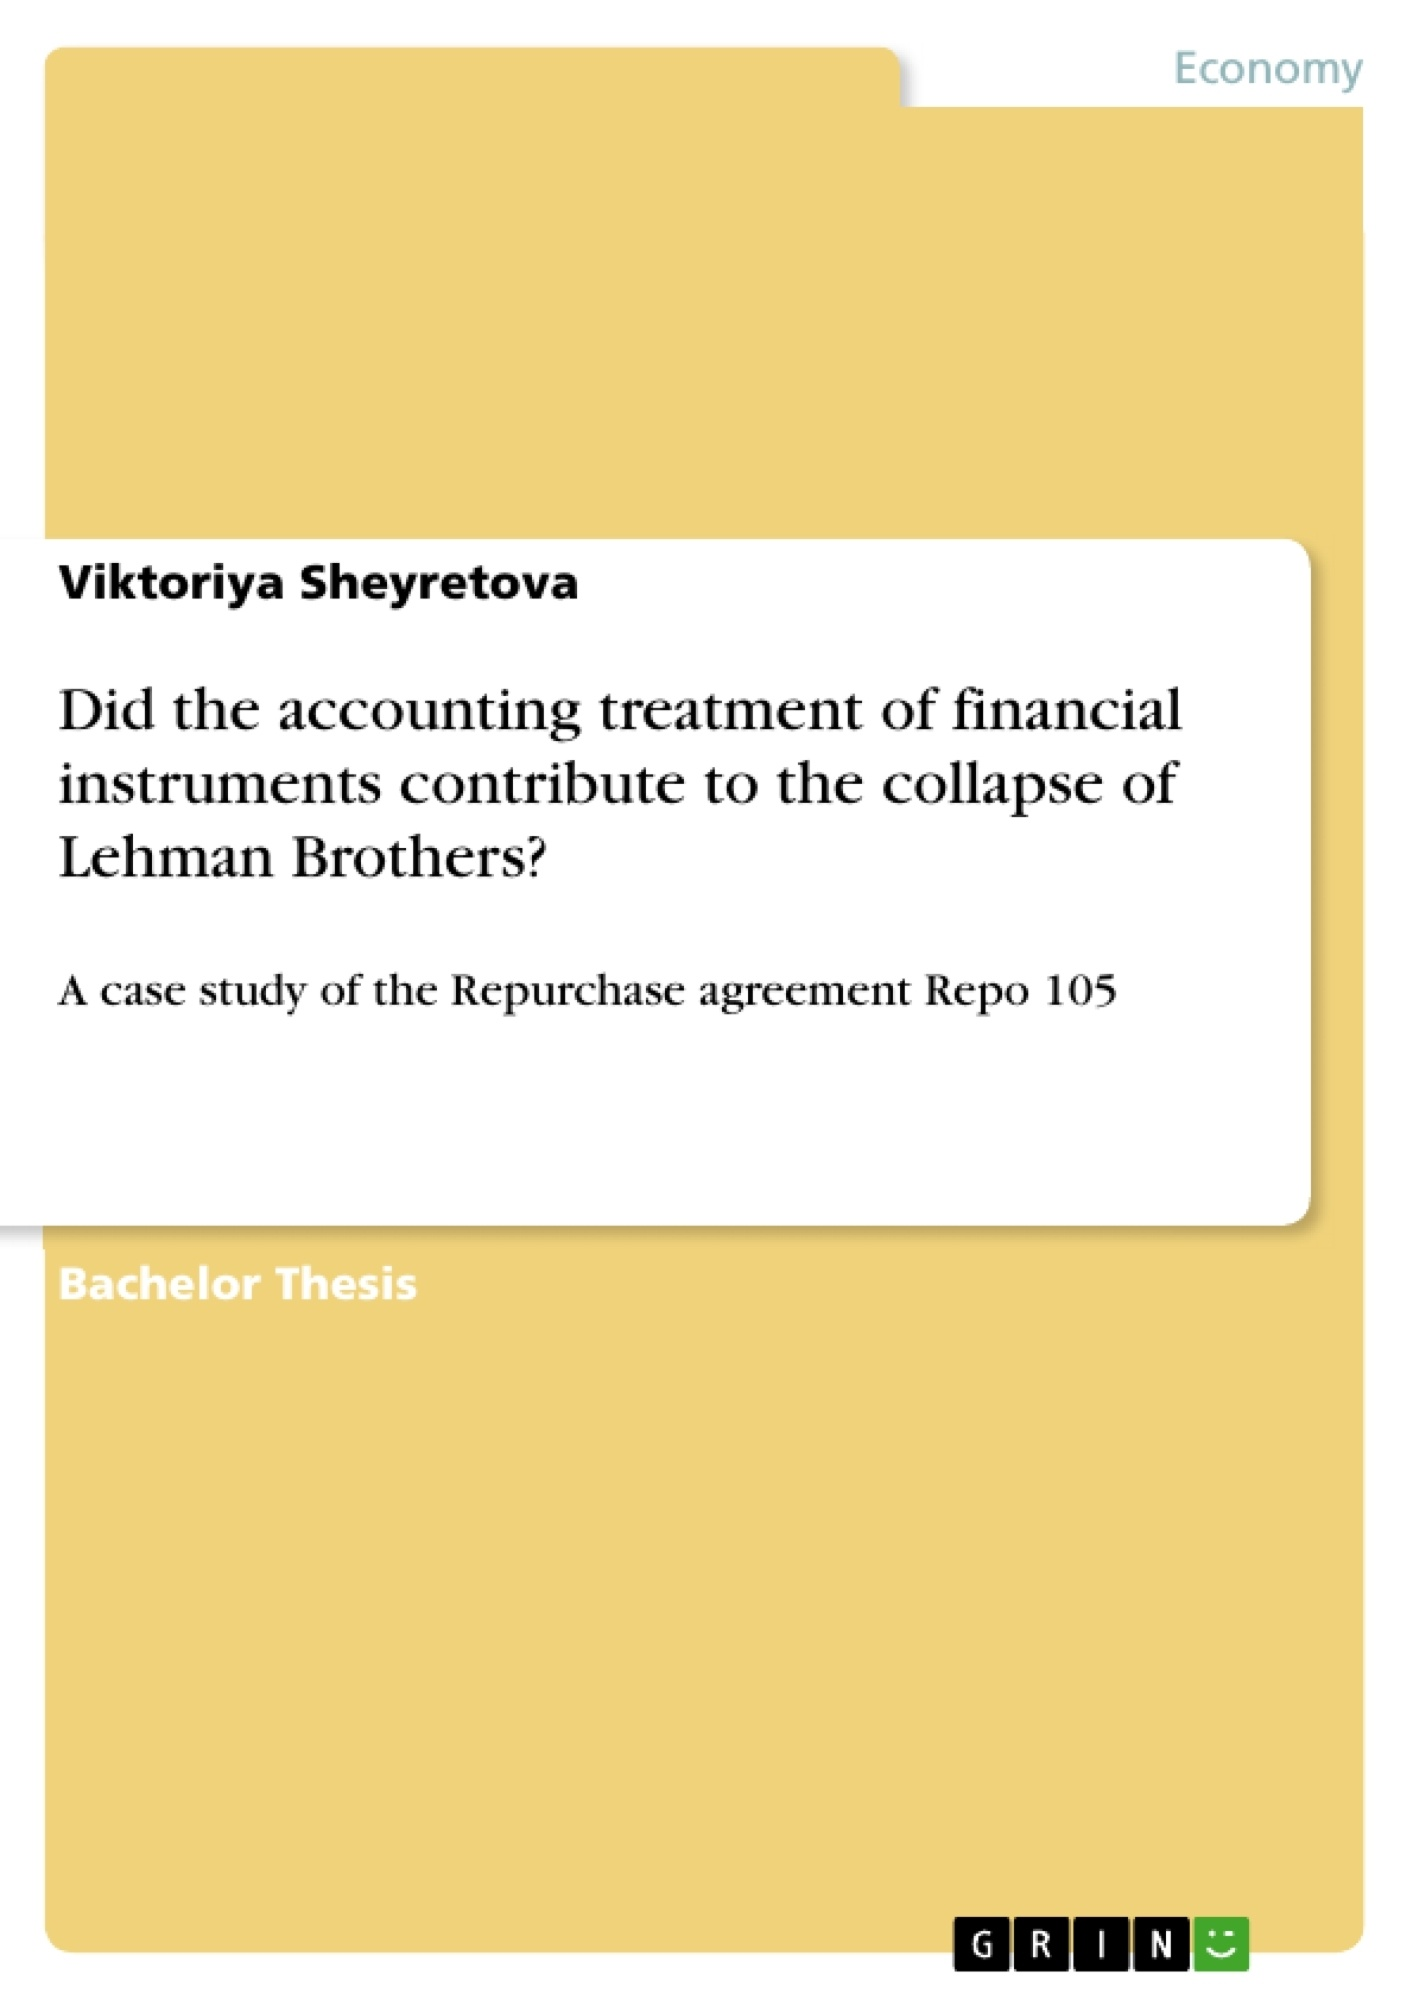 Did The Accounting Treatment Of Financial Instruments Contribute